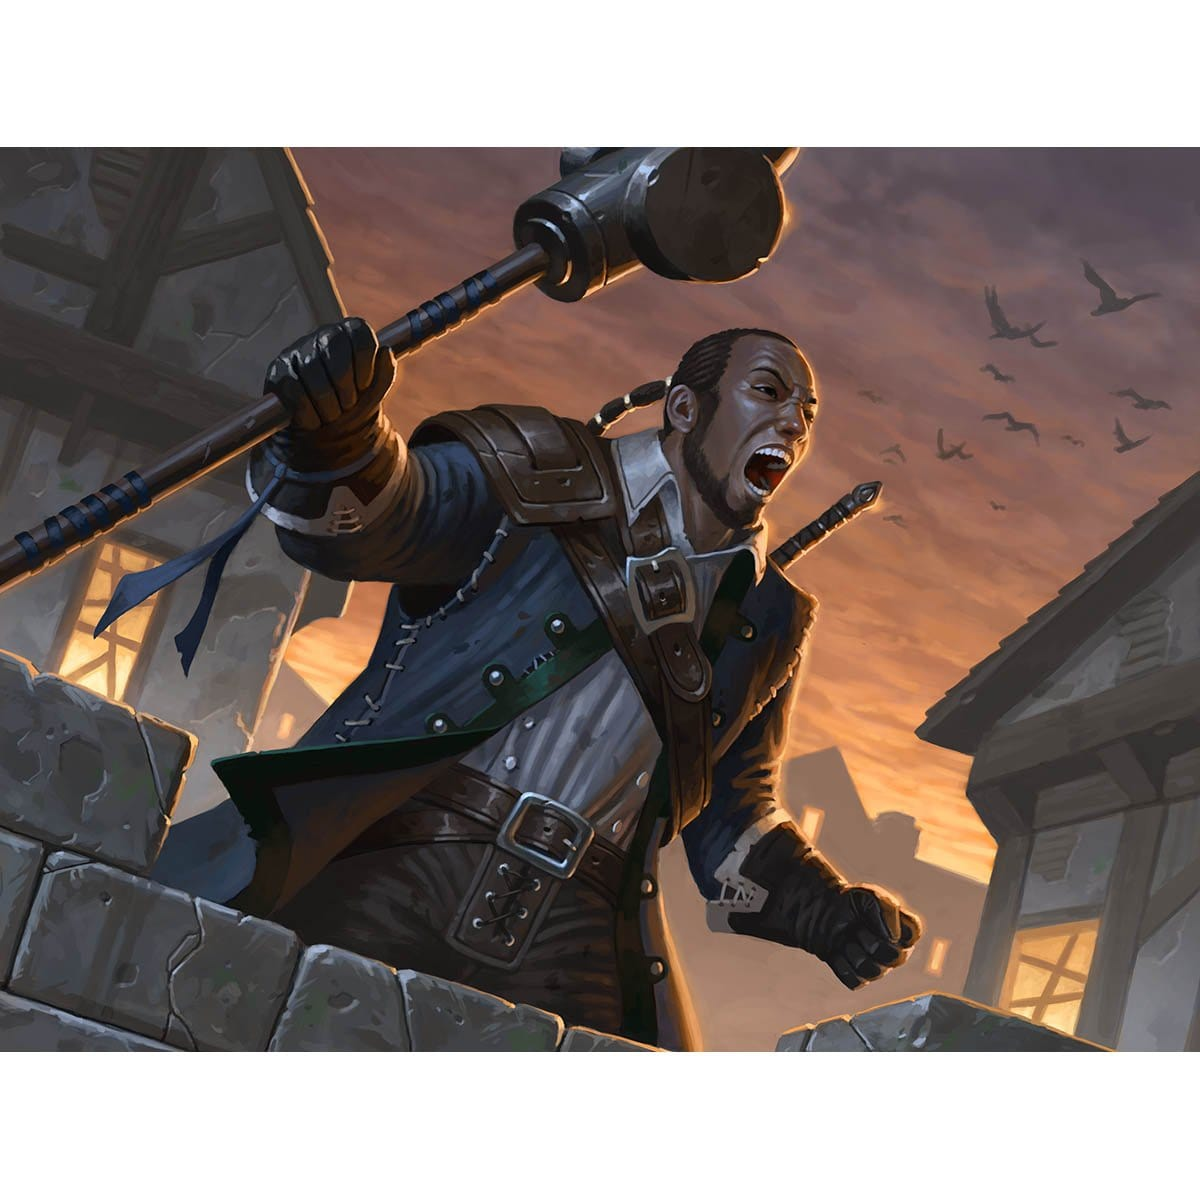 Duskwatch Recruiter Print - Print - Original Magic Art - Accessories for Magic the Gathering and other card games